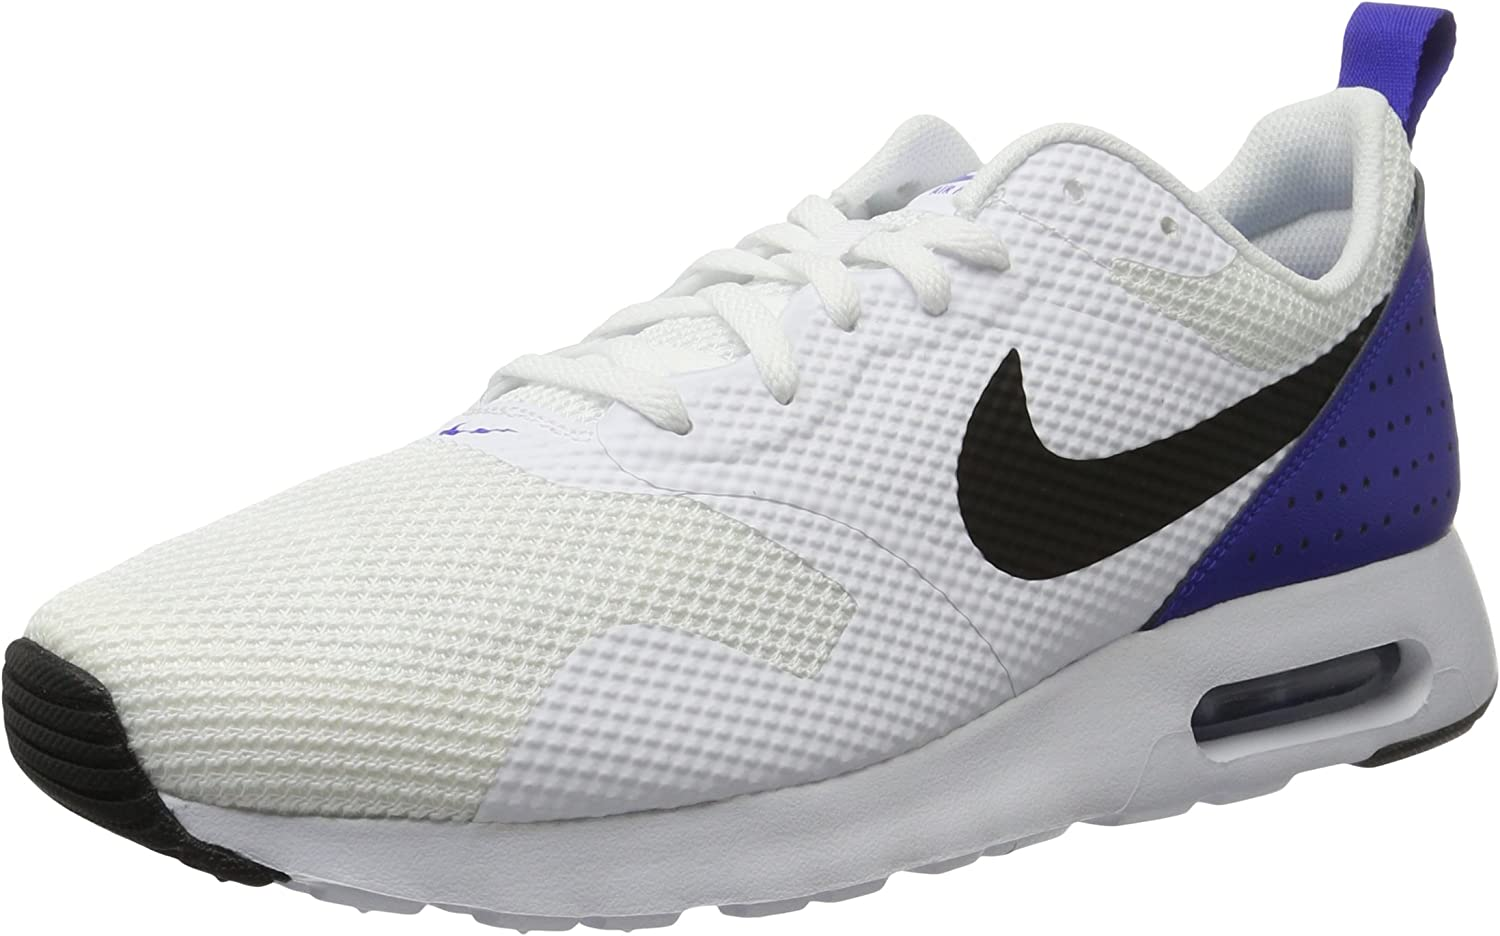 Nike Men's Air Max Tavas Trainers